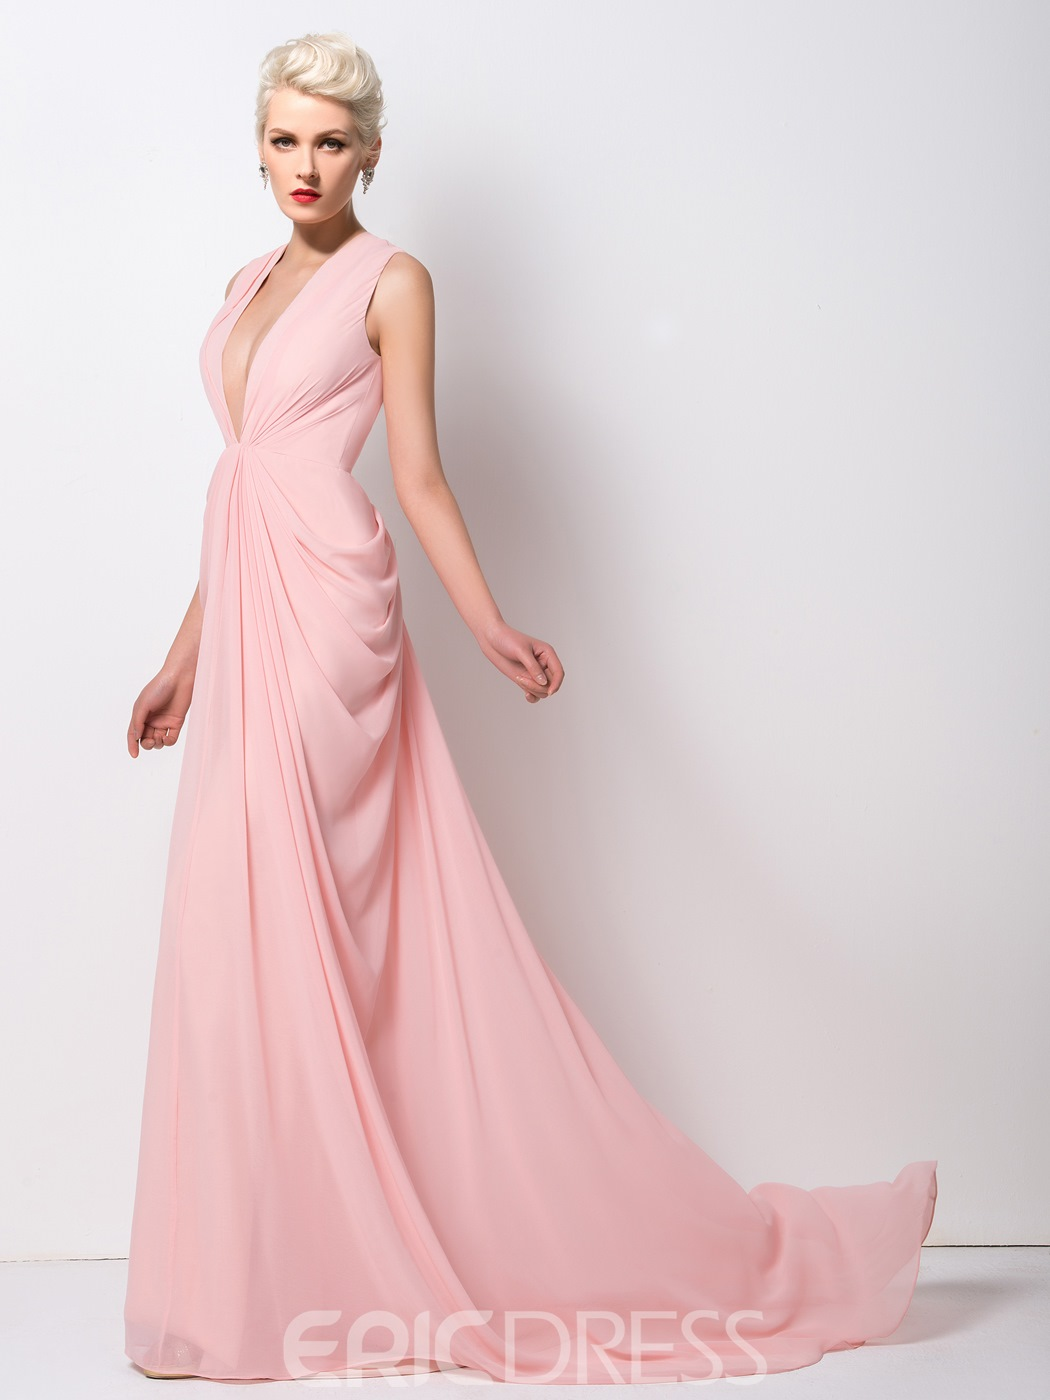 607aaf2cfe97 Ericdress Classy Deep-V Neck Ruched Long Evening Dress 11315139 ...